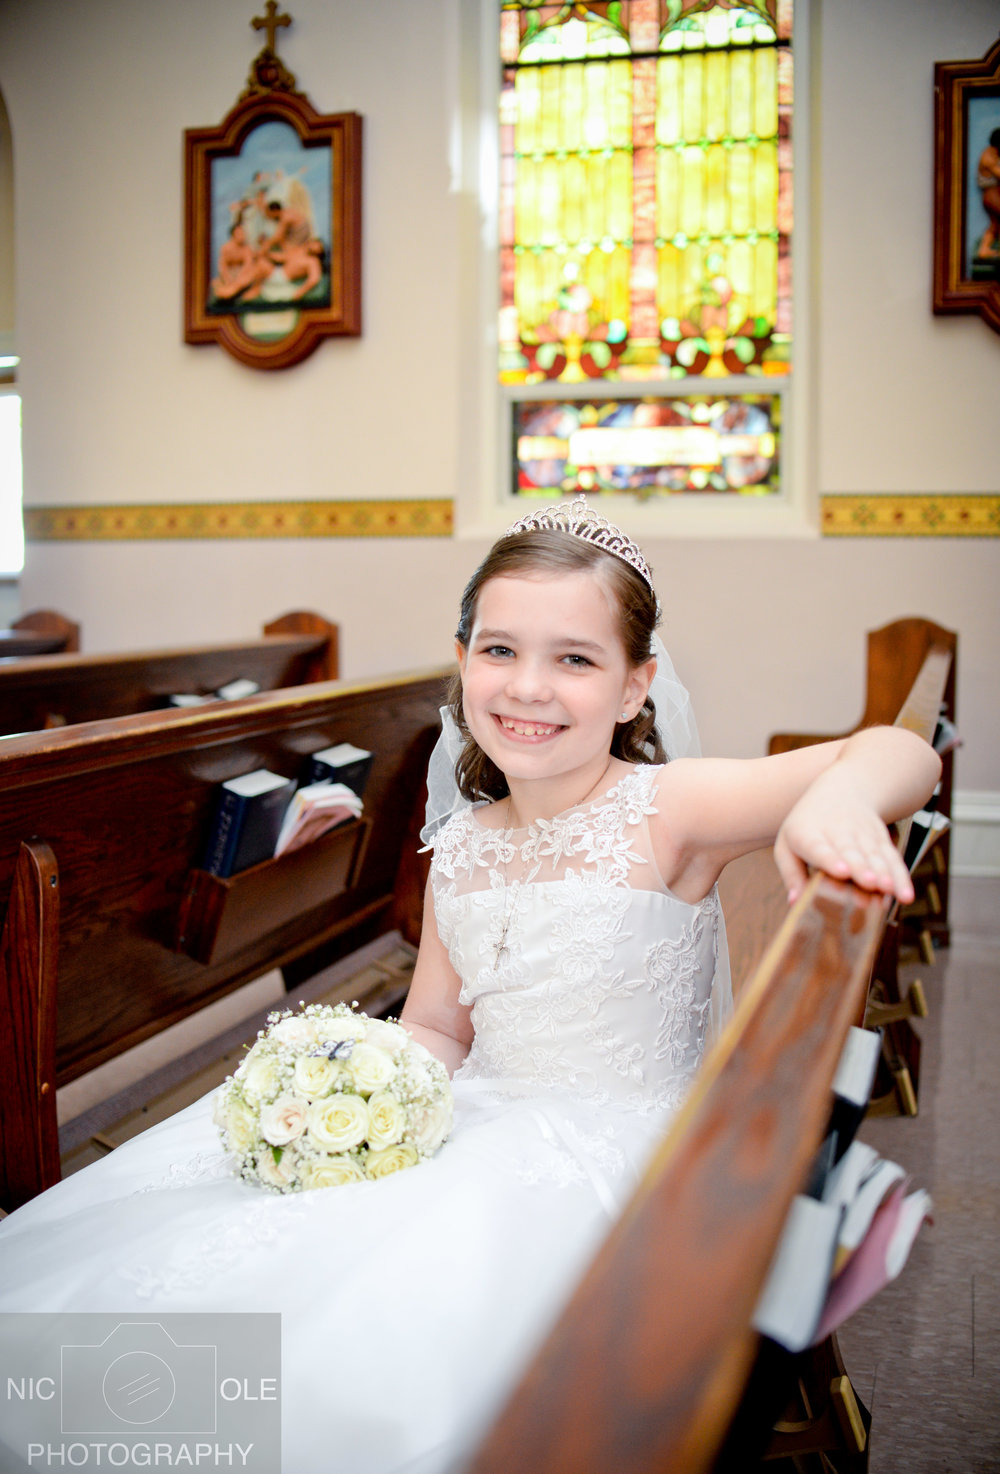 Ava's Communion 2017-NIC-OLE Photography-4.jpg